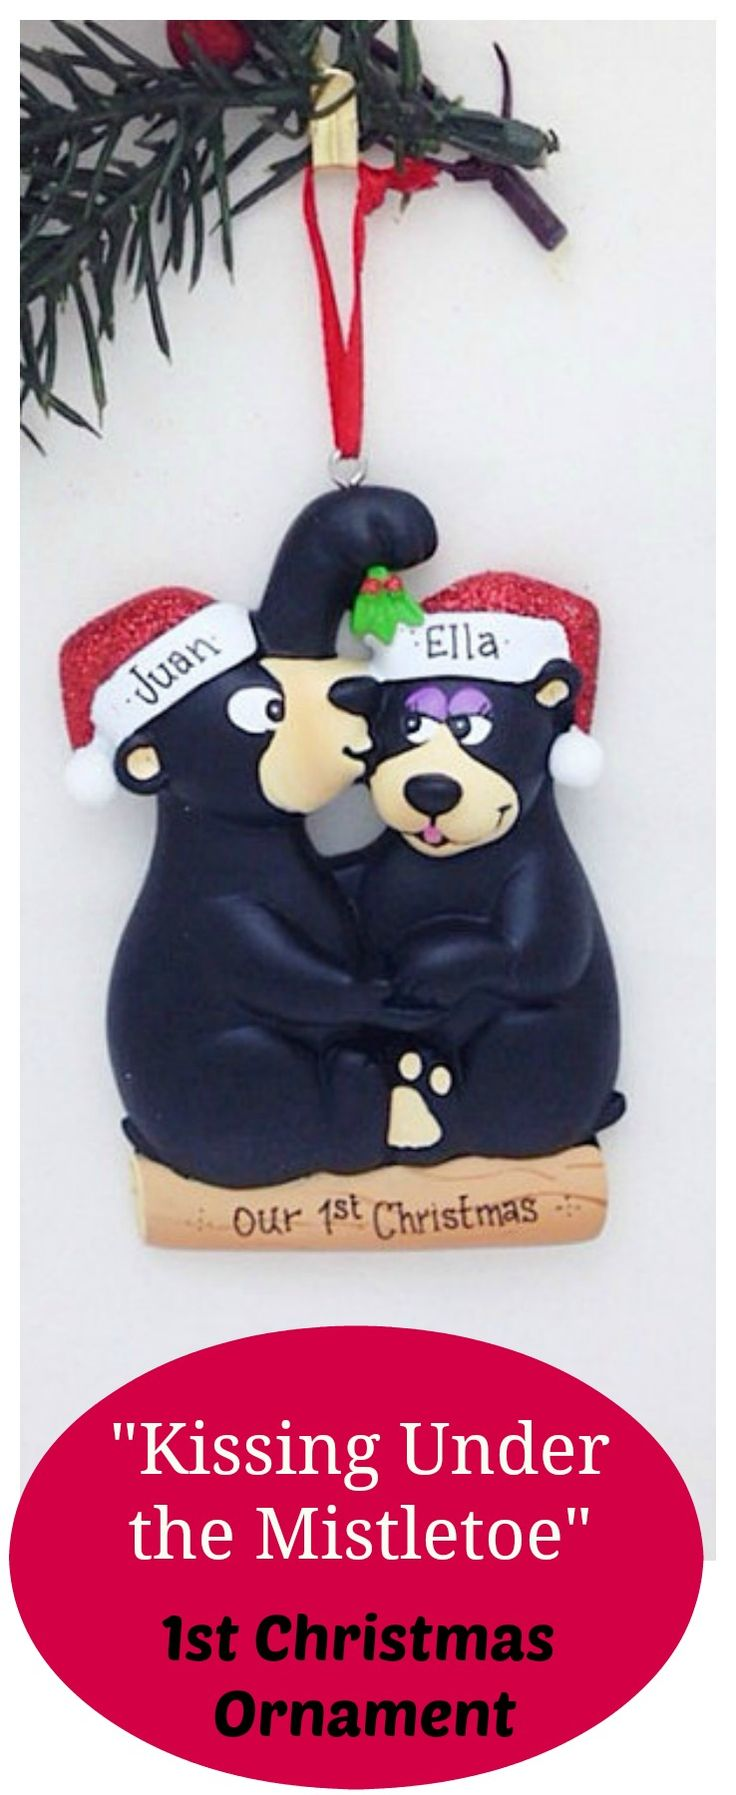 Personalized Christmas Ornament With Two Black Bears Kissing Under The  Mistletoe! A Great Gift For